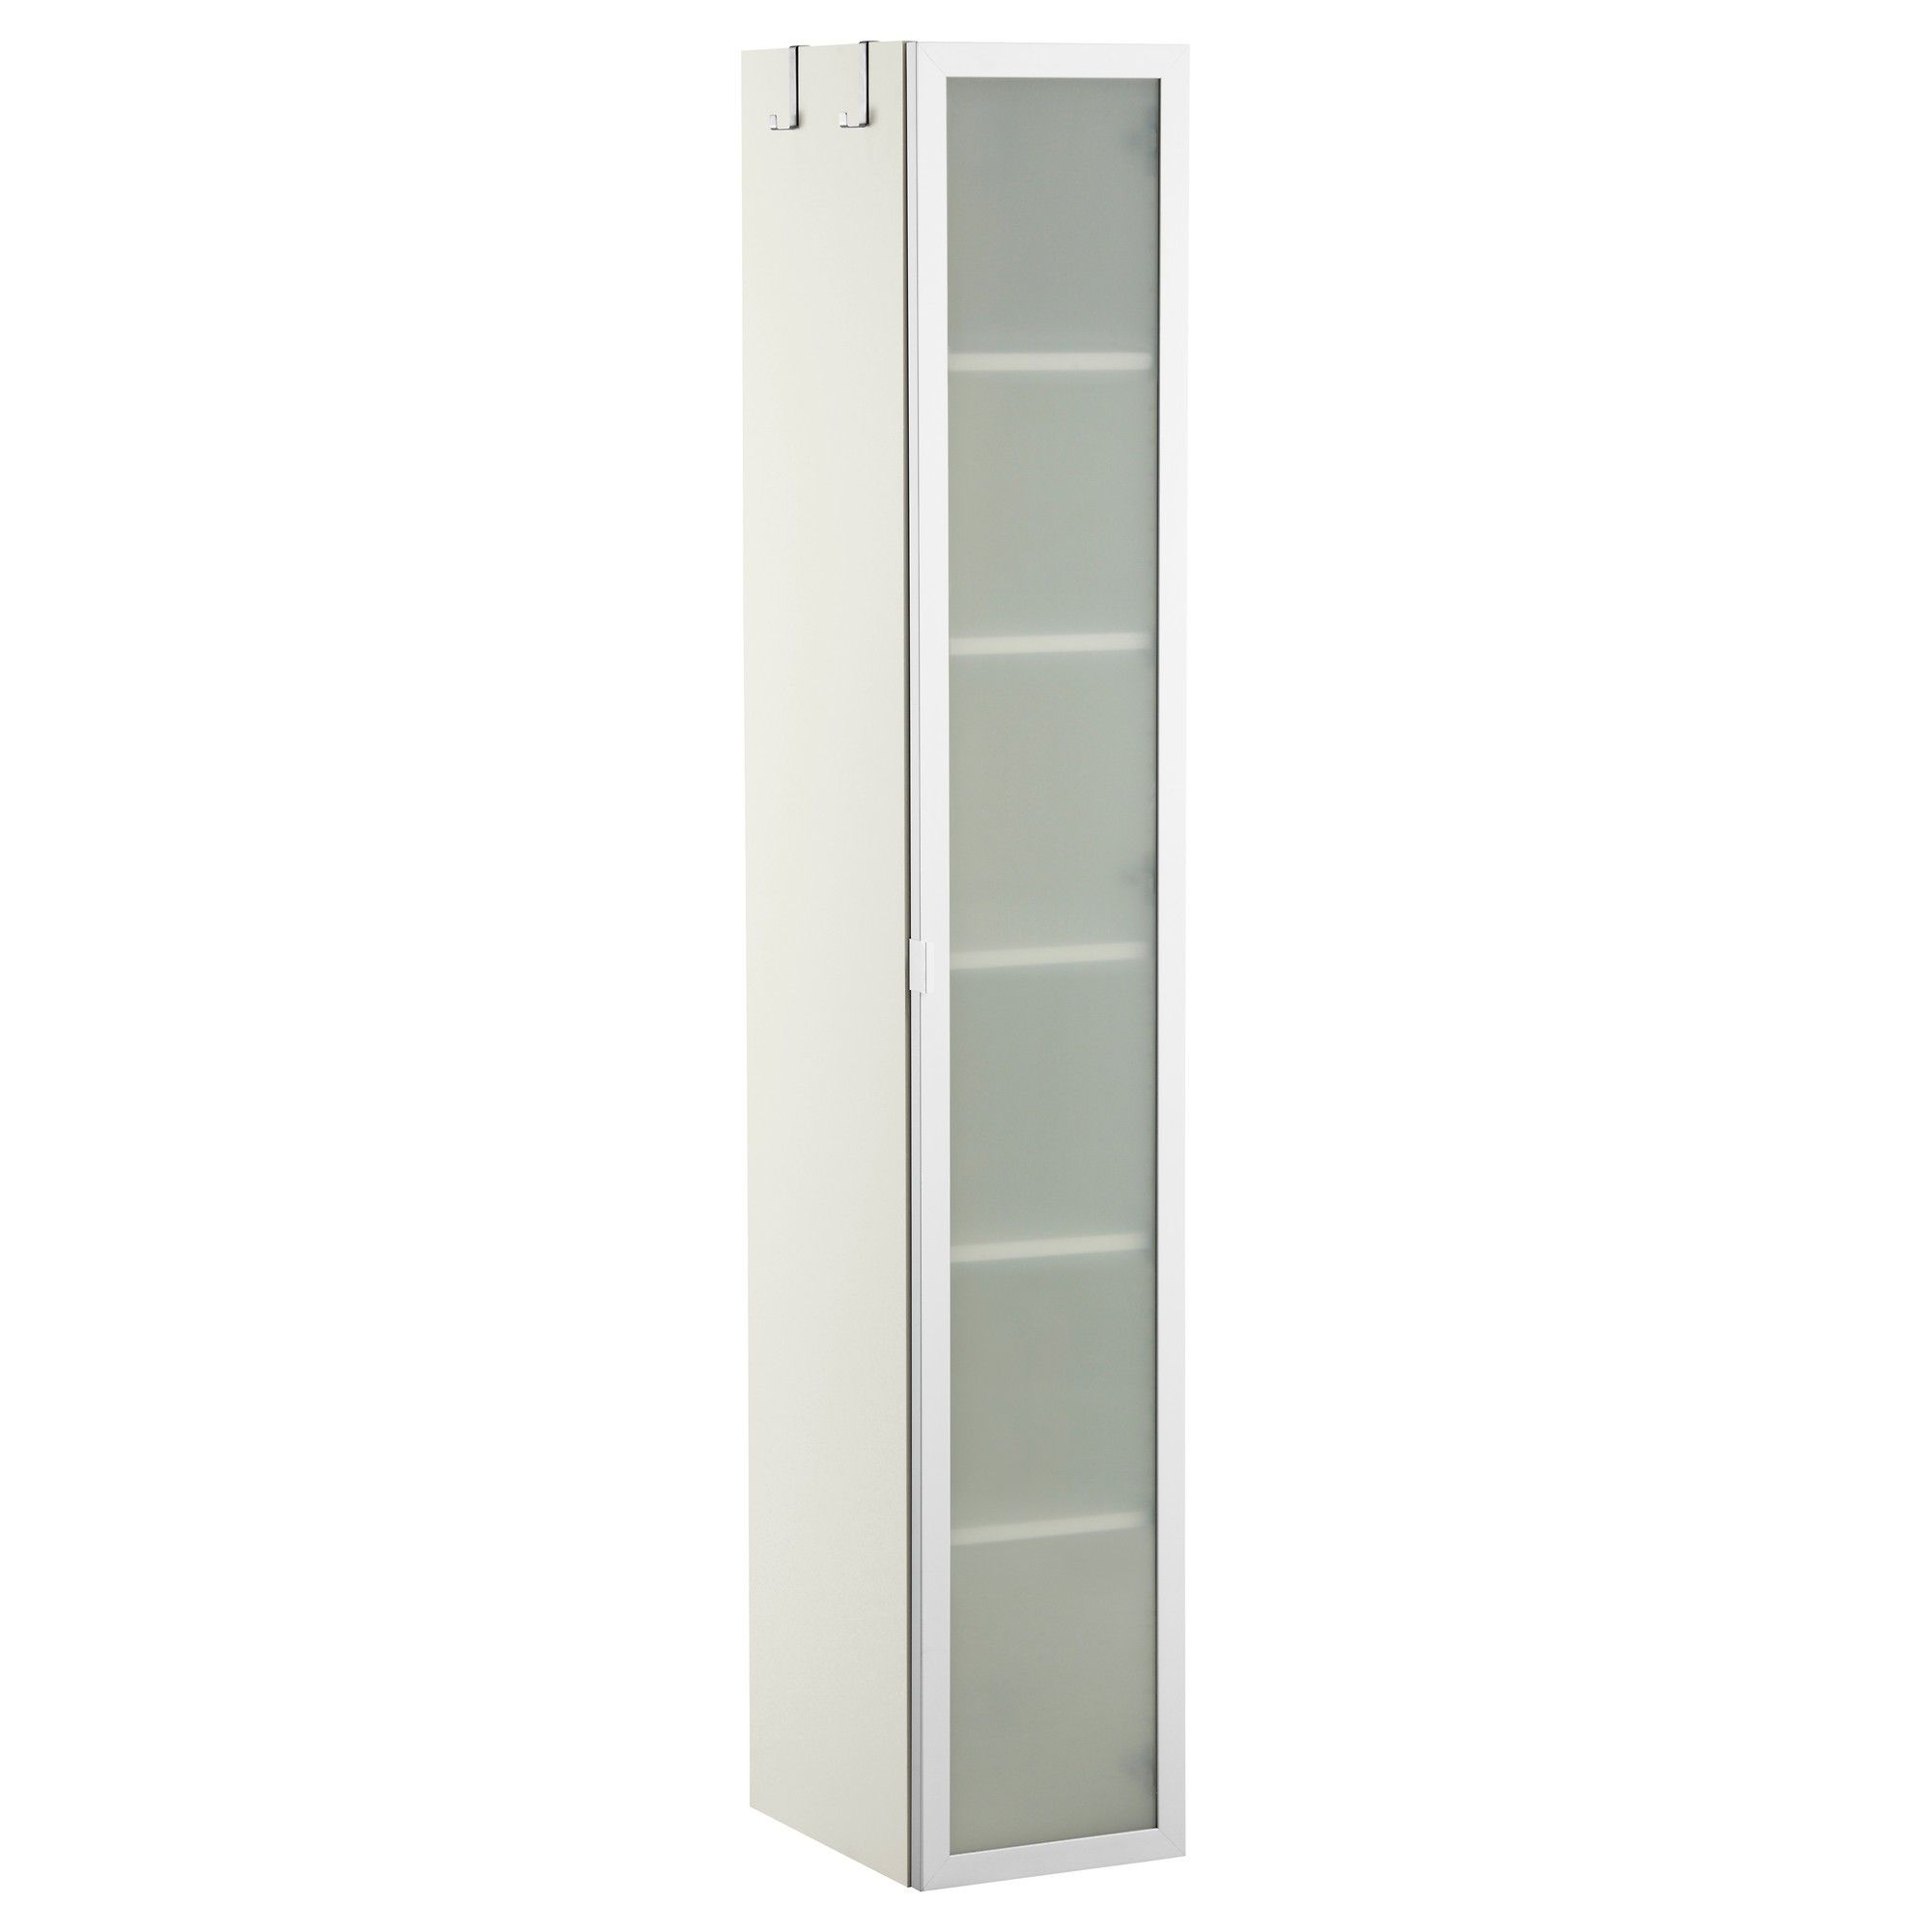 Amazing Bathroom Cabinets High Tall Ikea From High Bathroom Cabinet Download Free Architecture Designs Scobabritishbridgeorg